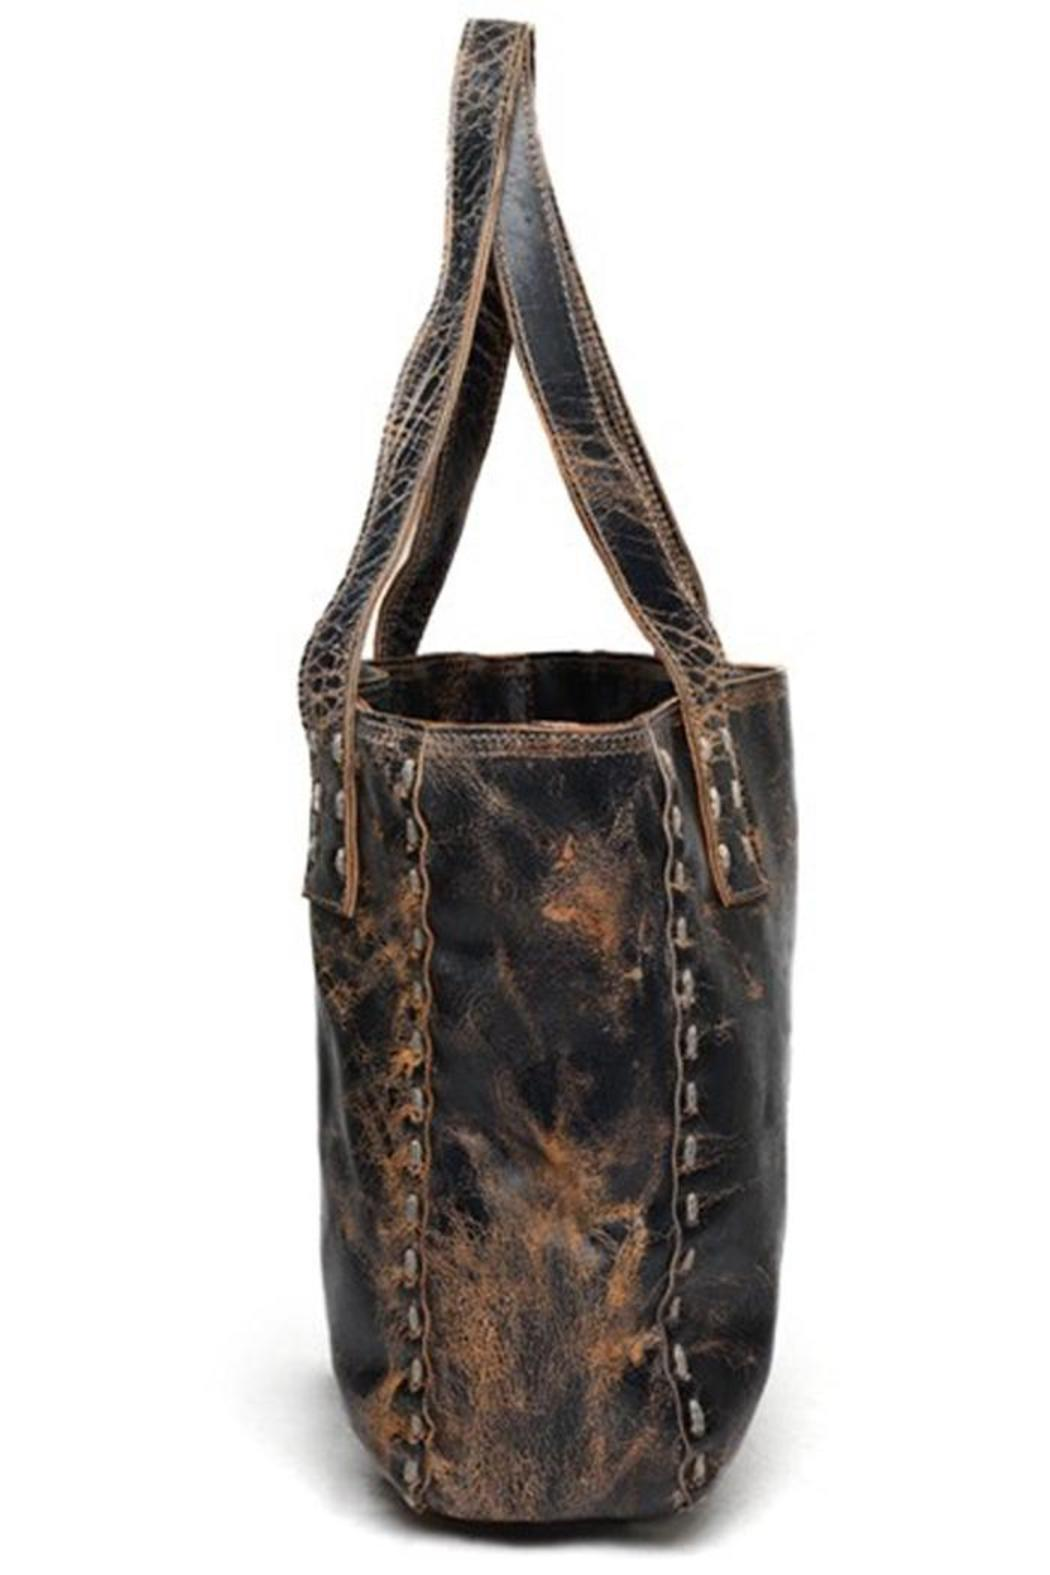 15386e30aefb BED STU Black Stevie Handbag from Lafayette by Brothers on the ...